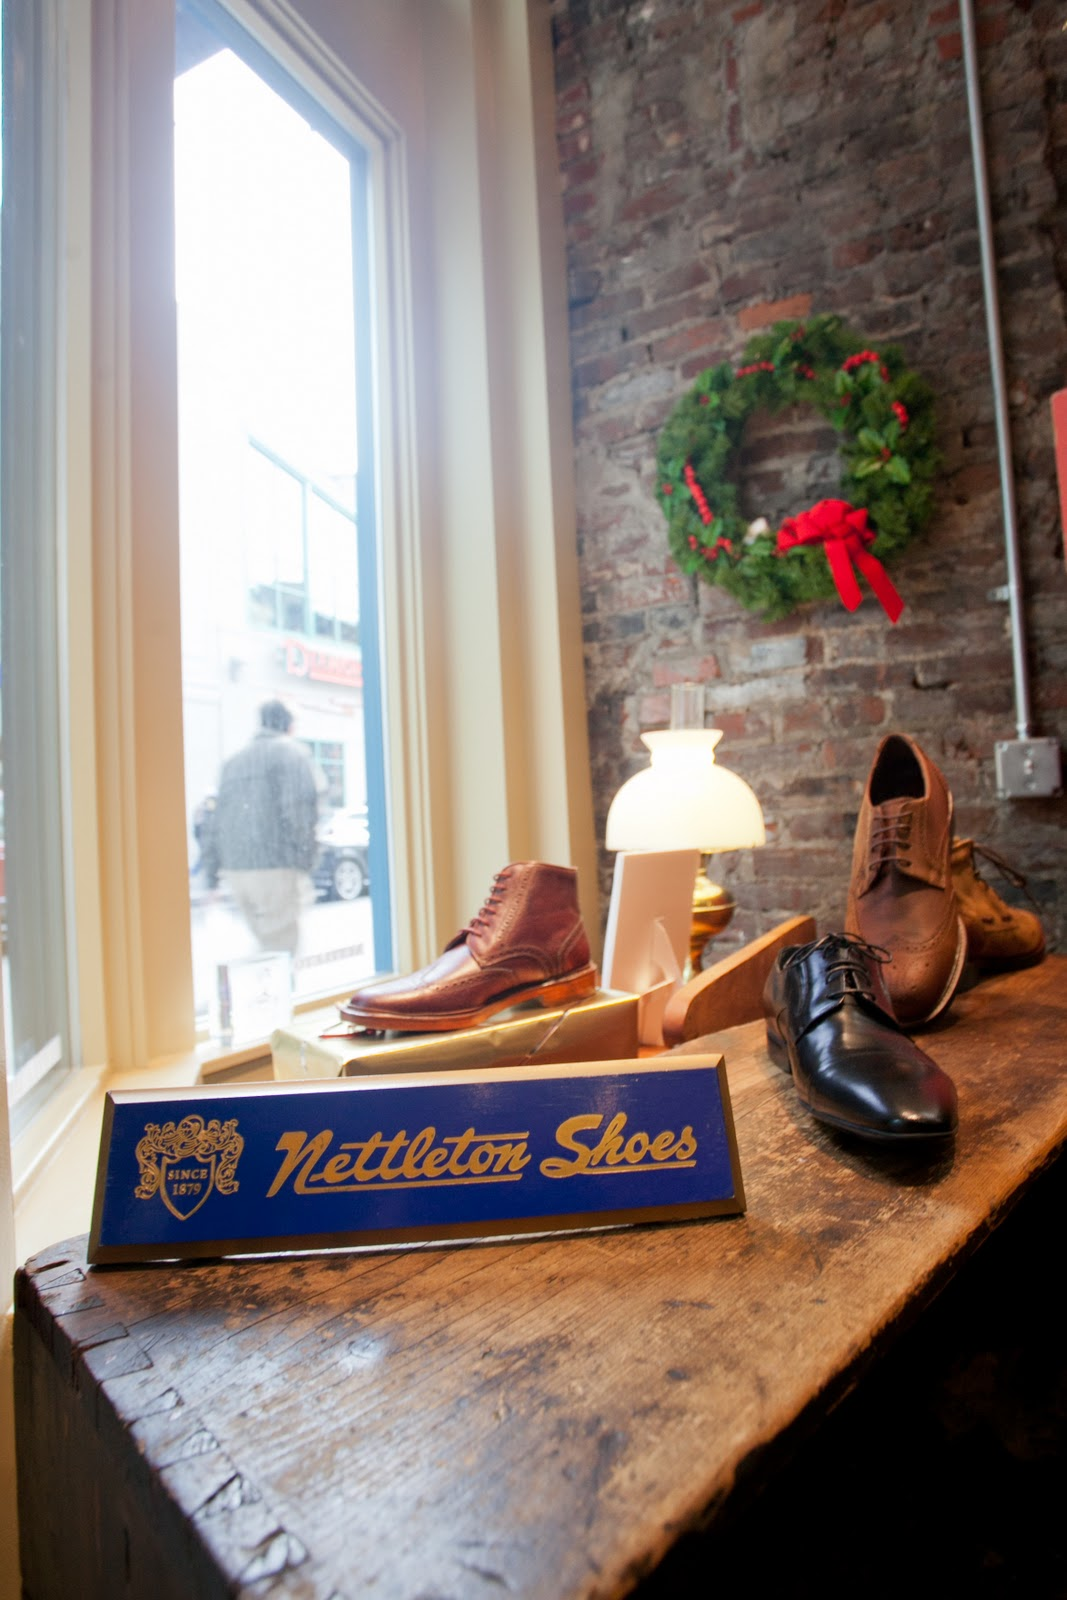 f3889d95da0a0 Around the corner from Heinz Healy's, you can help that special guy in your  life put his best foot forward in a pair of shoes from the Nettleton Shop.